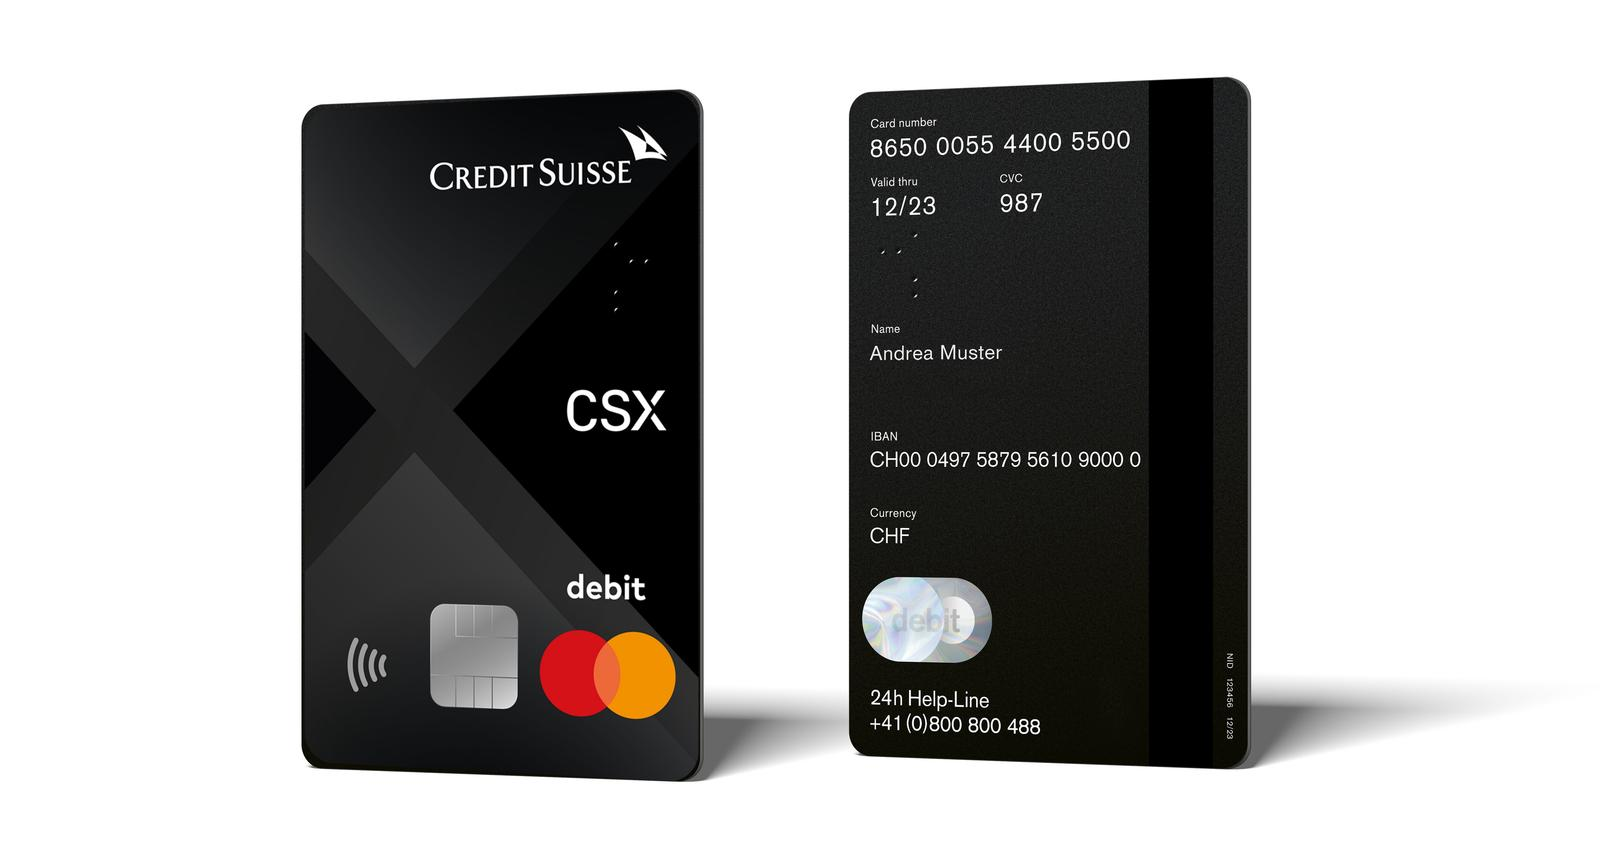 CSX Young   Credit Suisse